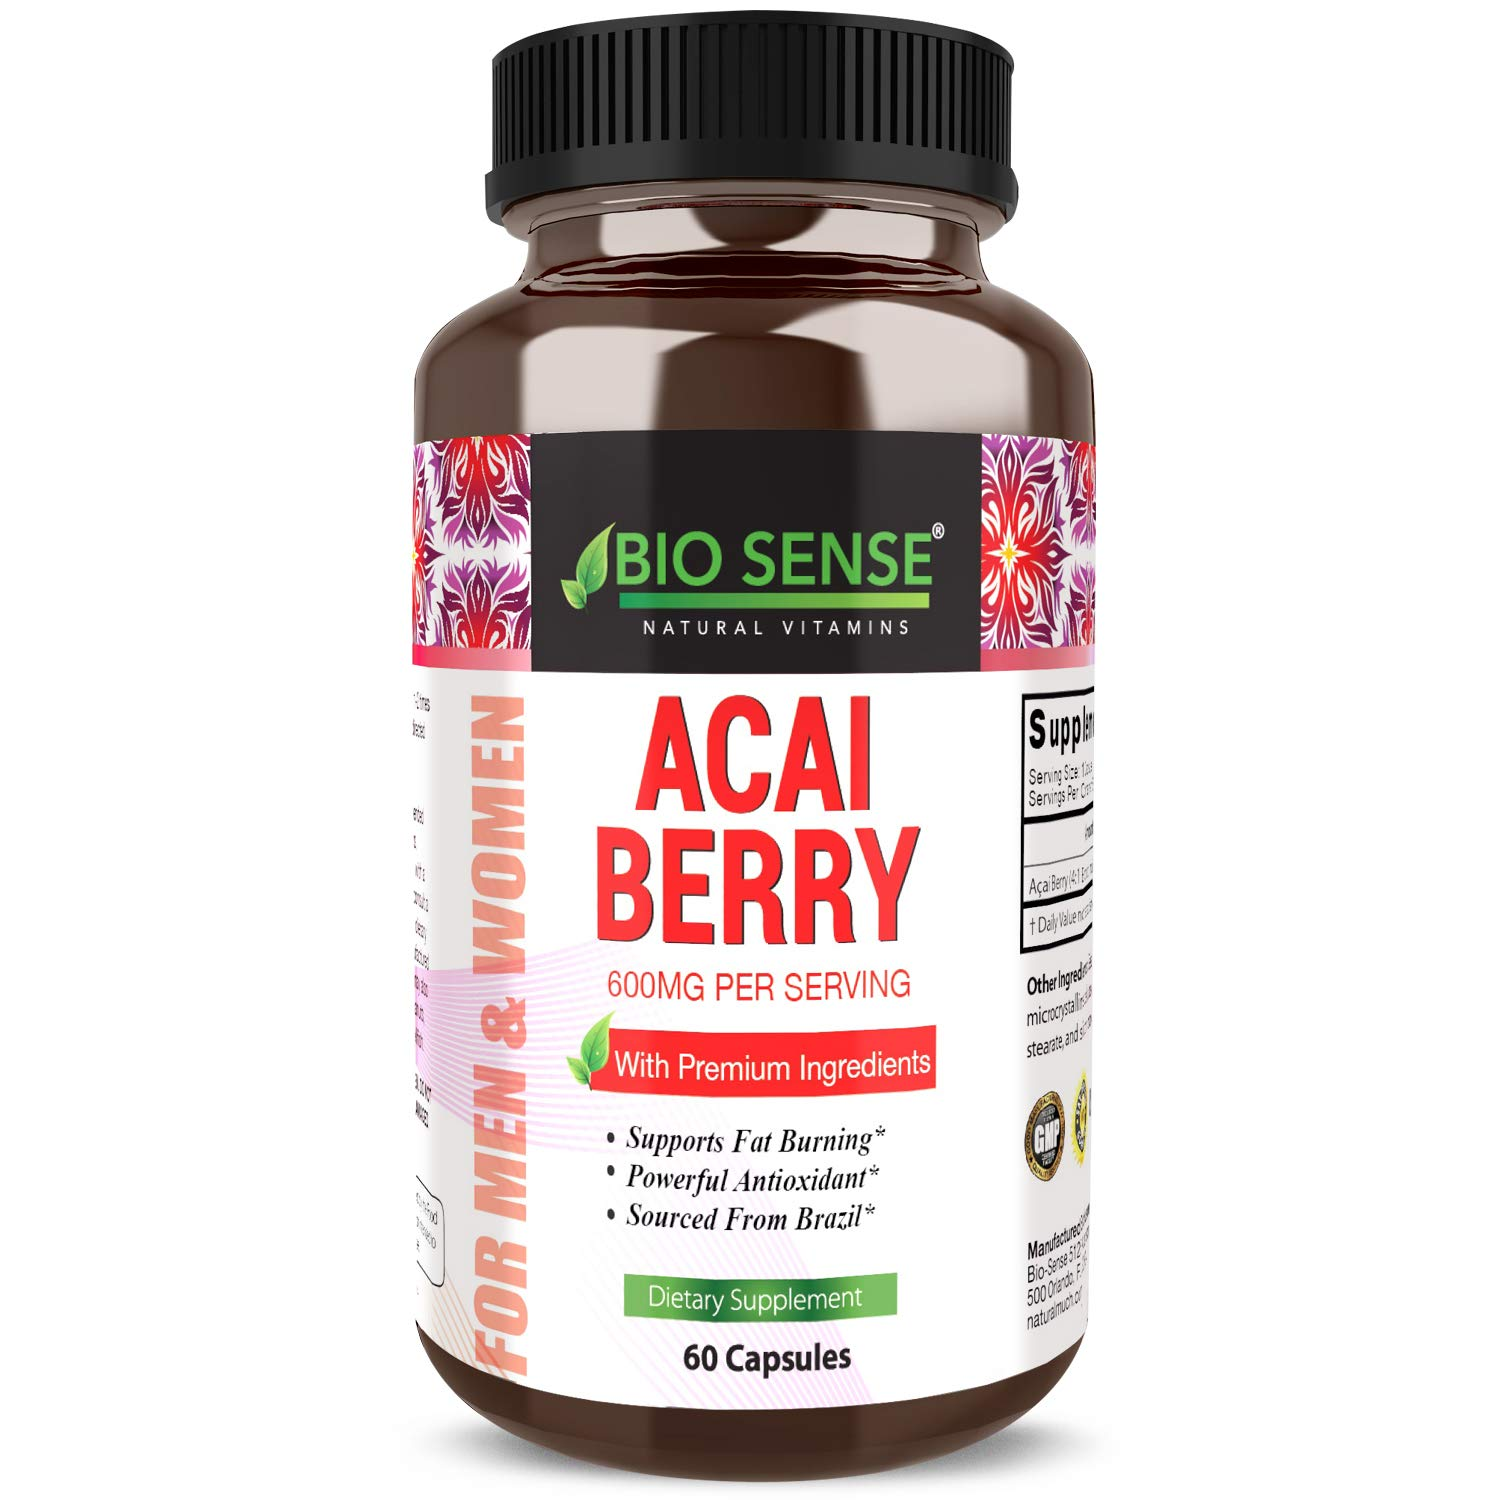 Acai Berry Weight Loss Supplement Natural Diet Pills Energy Boosting Capsules For Men And Women Best